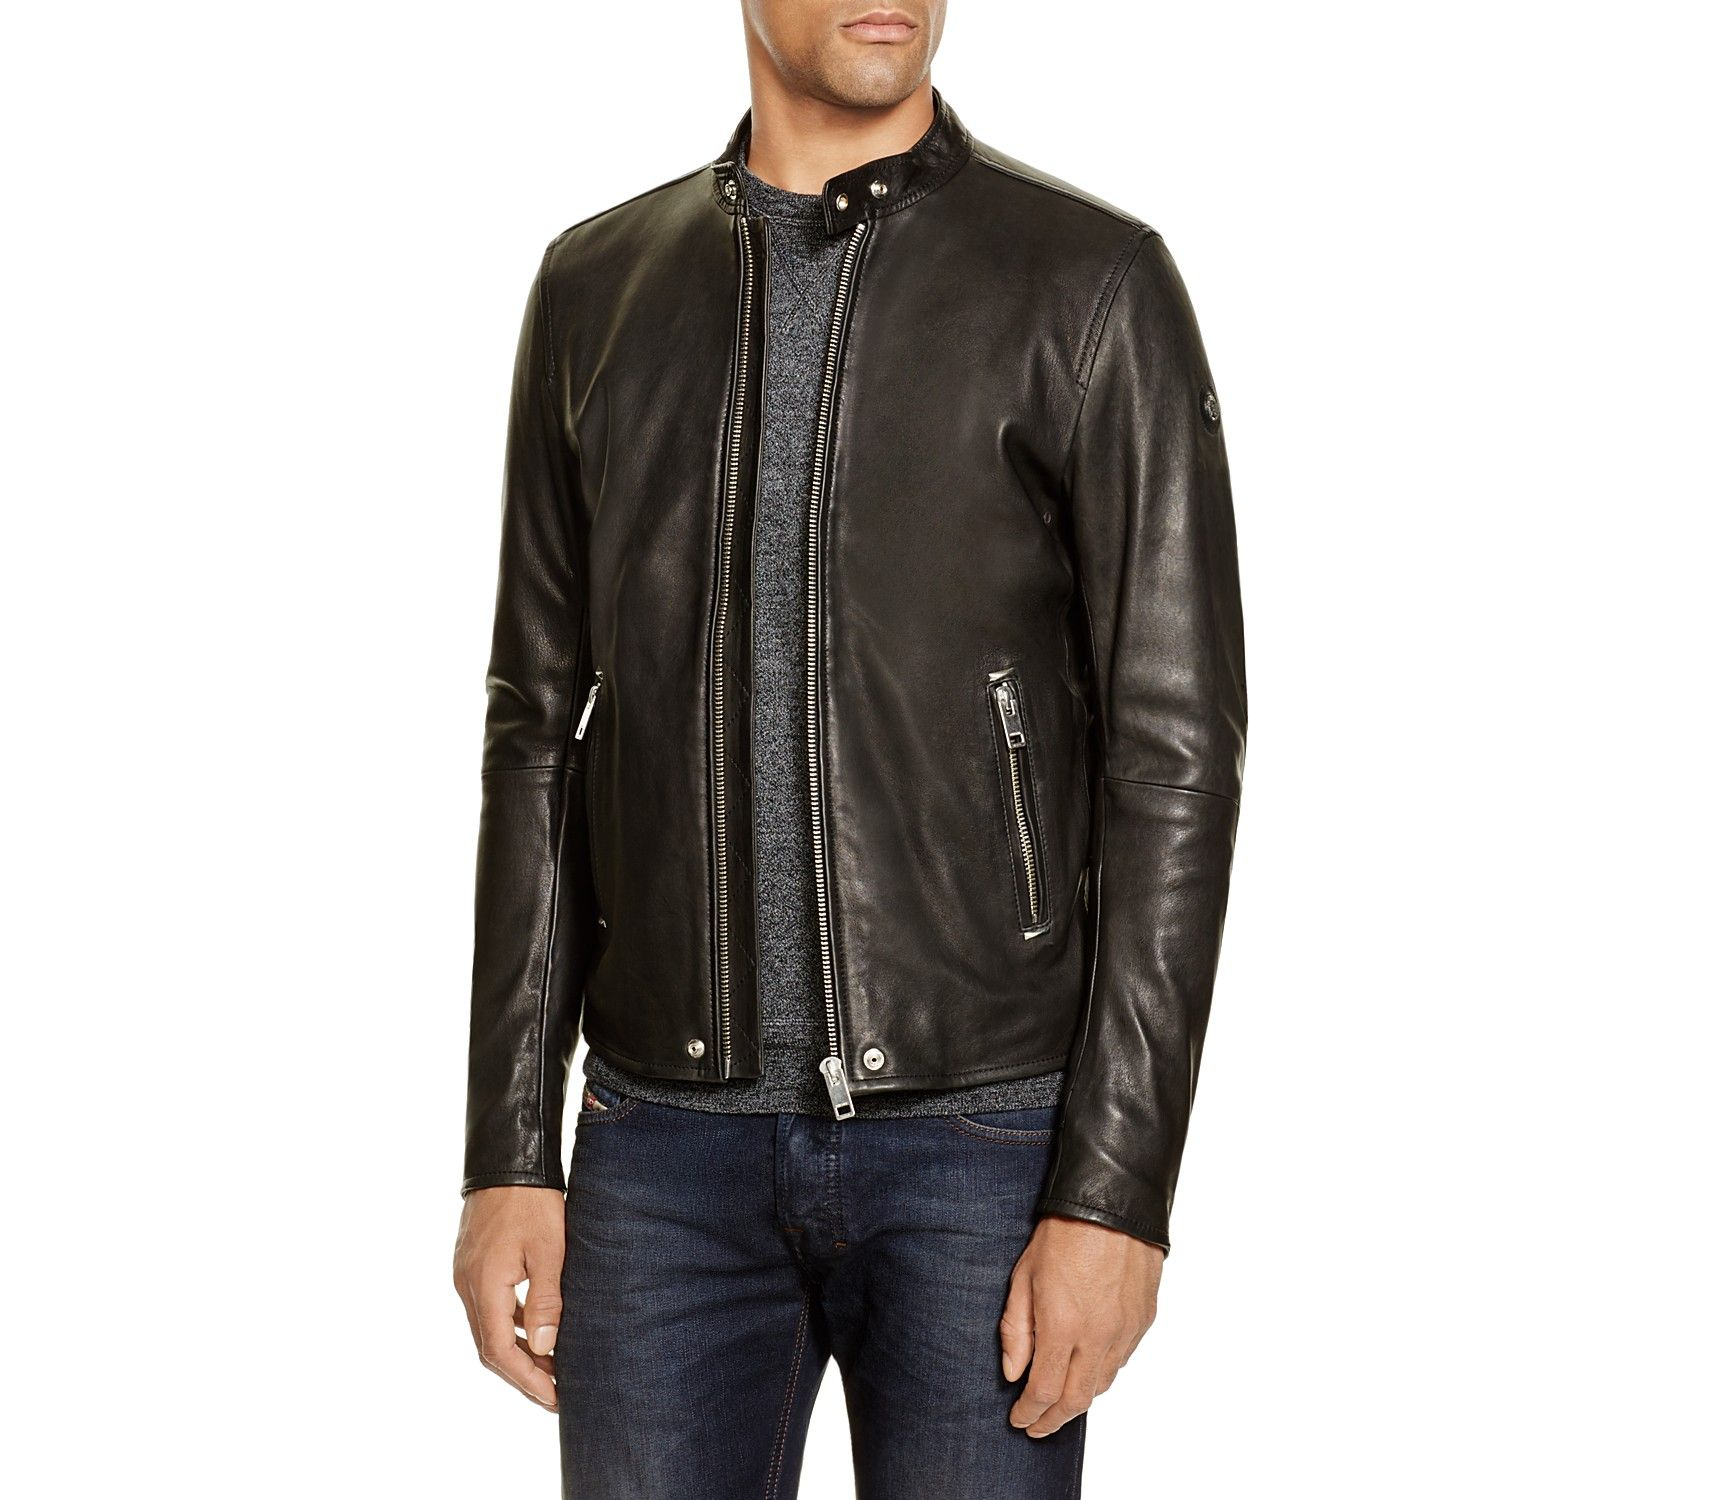 Diesel L Roshi Leather Jacket Men Coats Jackets Leather Shearling Suede Bloomingdale S Leather Jacket Leather Jackets Online Jackets [ 1500 x 1720 Pixel ]